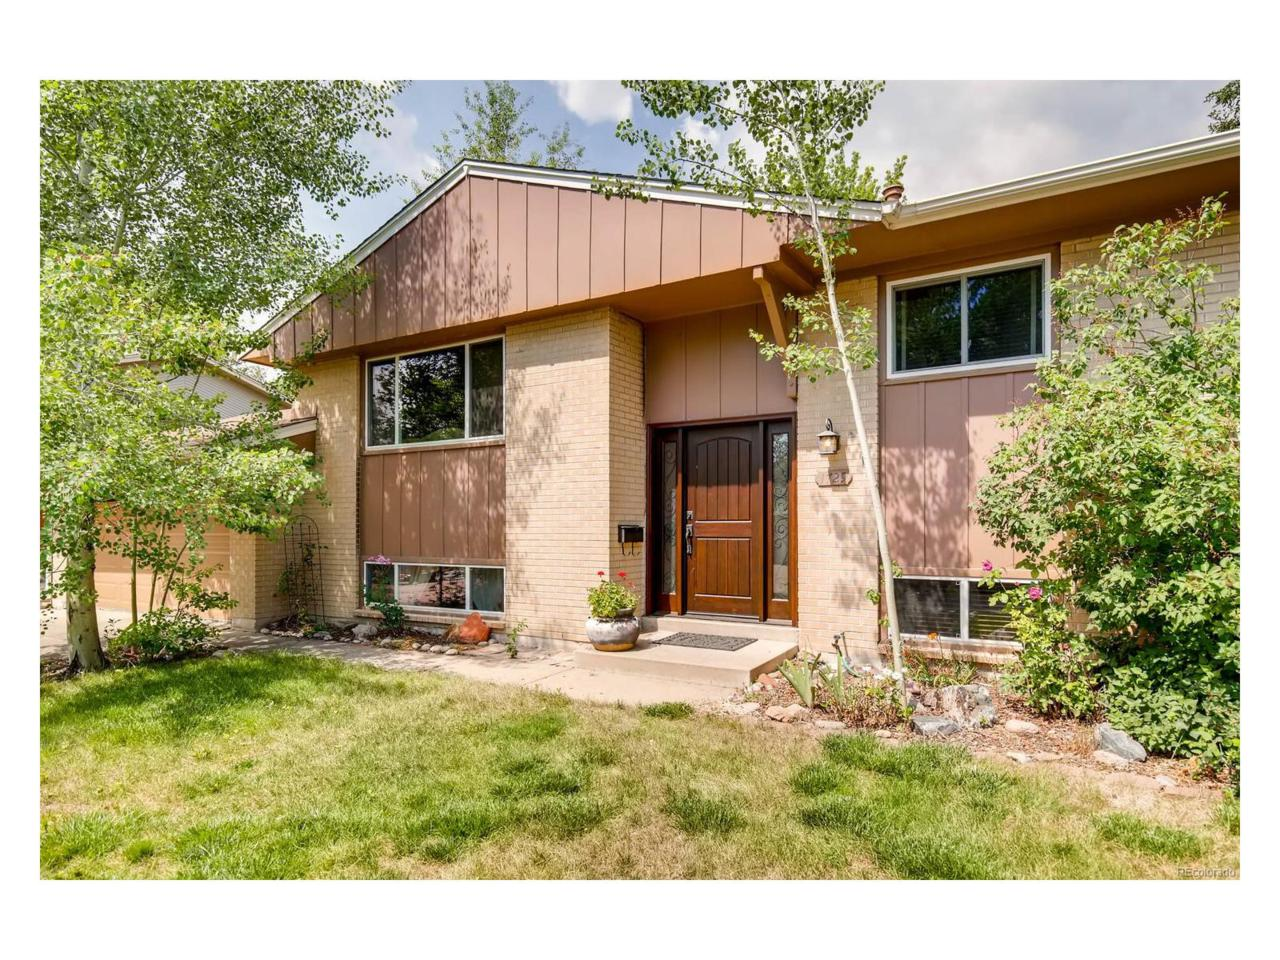 1729 S Van Gordon Court, Lakewood, CO 80228 (MLS #8673609) :: 8z Real Estate